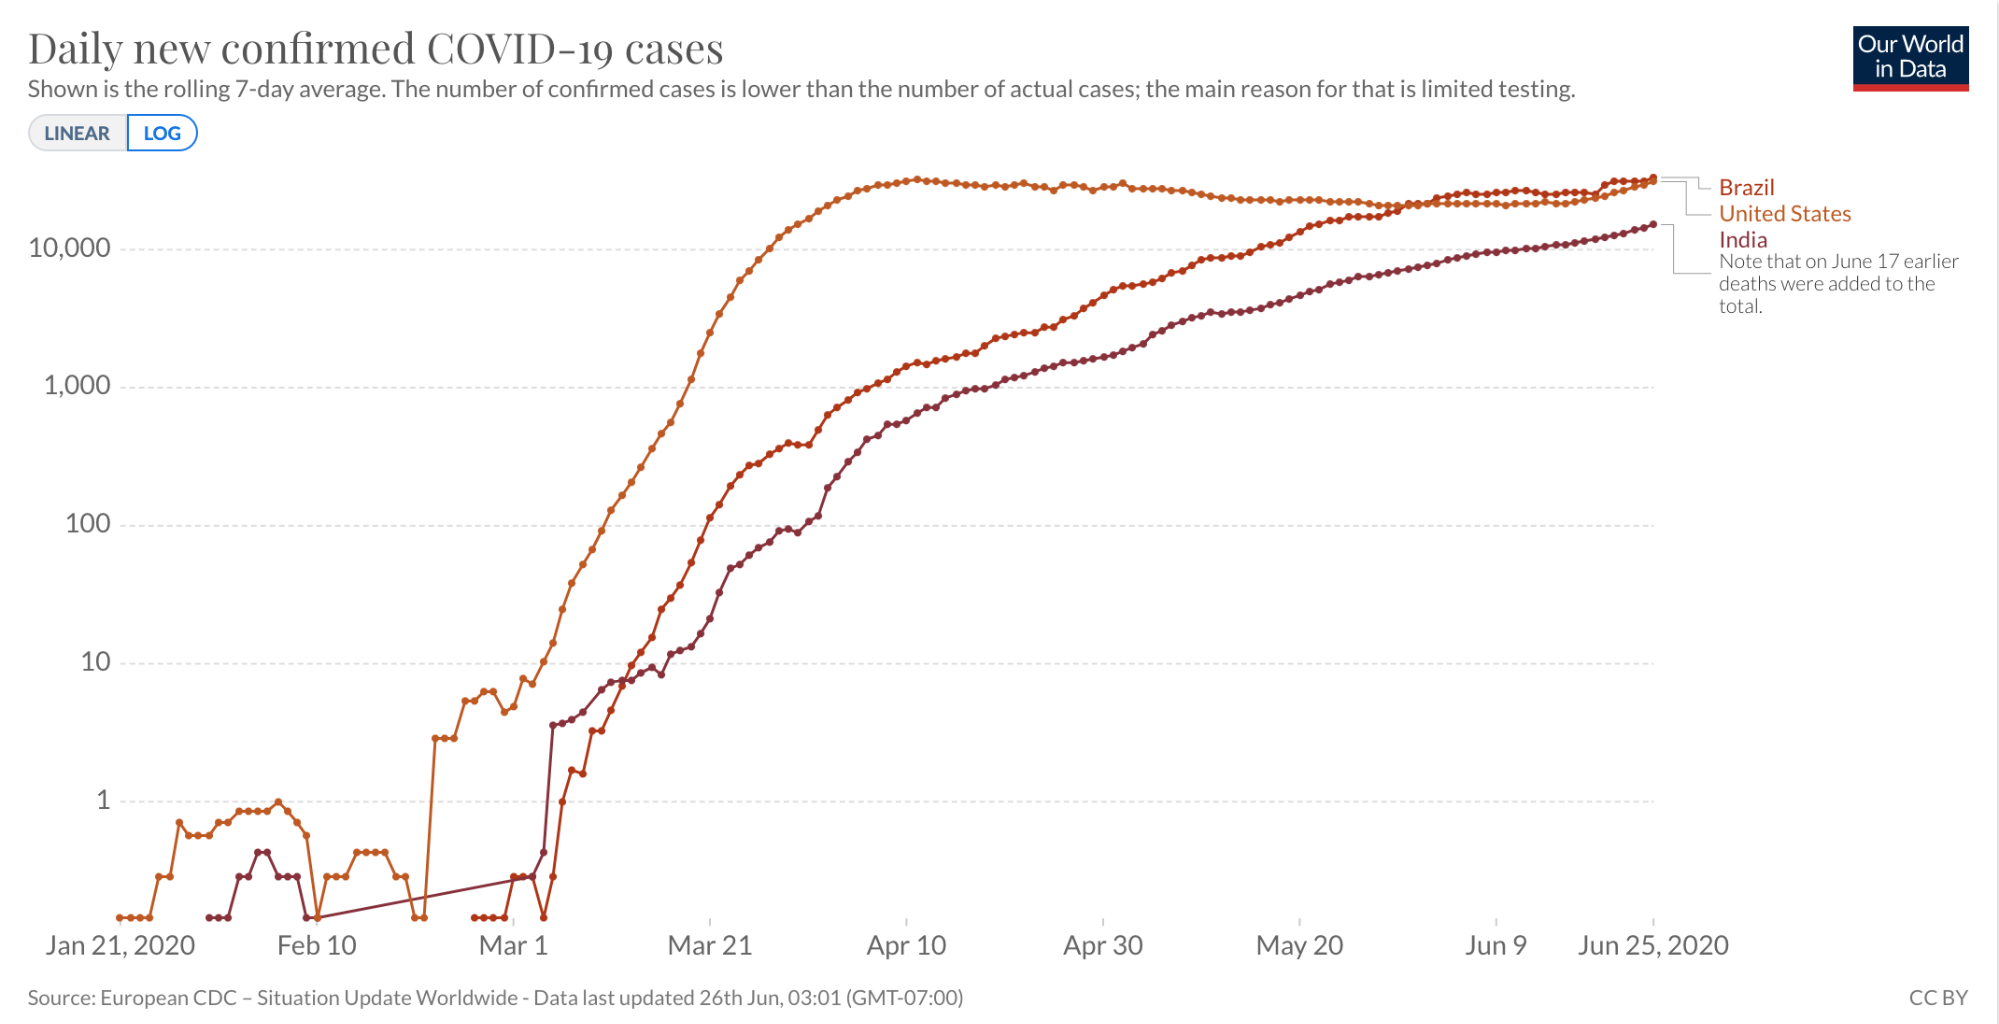 The rolling 7-day average of confirmed cases for Brazil, United States, and India, as a logarithmic scale.